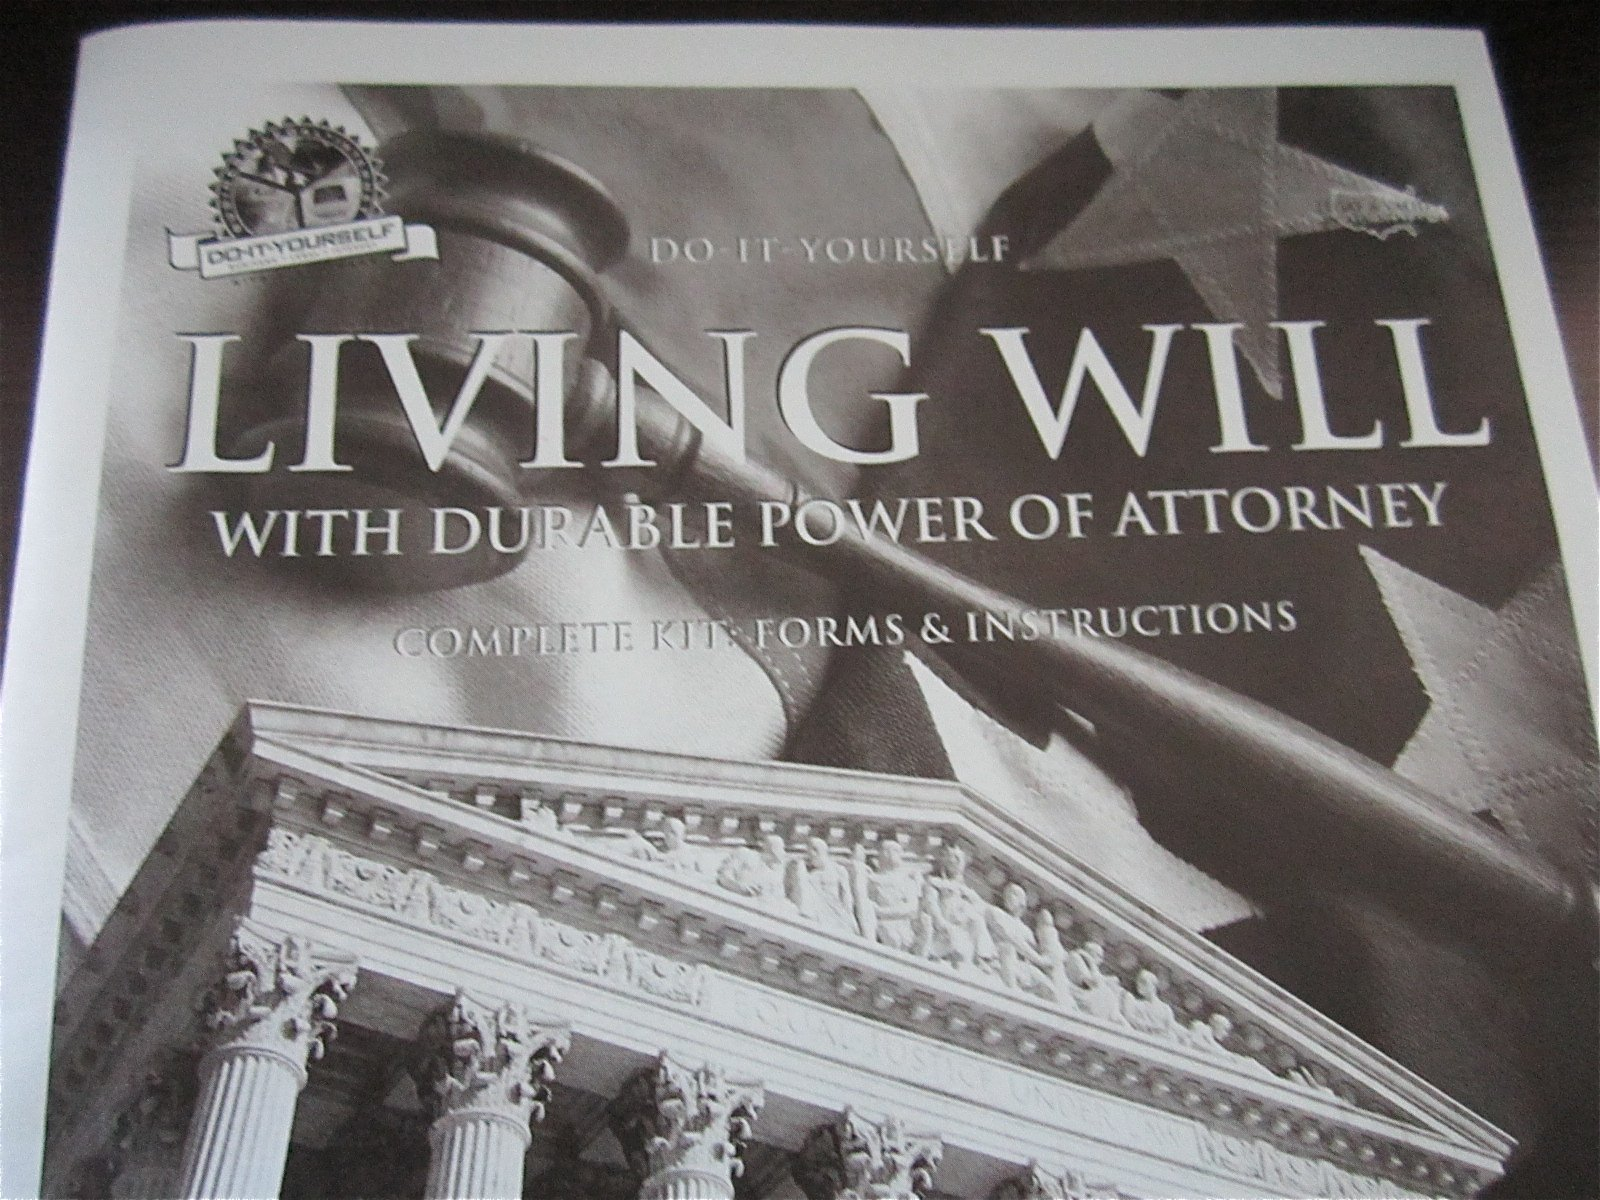 Living will kit do it yourself valid in all 50 states timothy j living will kit do it yourself valid in all 50 states timothy j smith 9781880398005 amazon books solutioingenieria Gallery